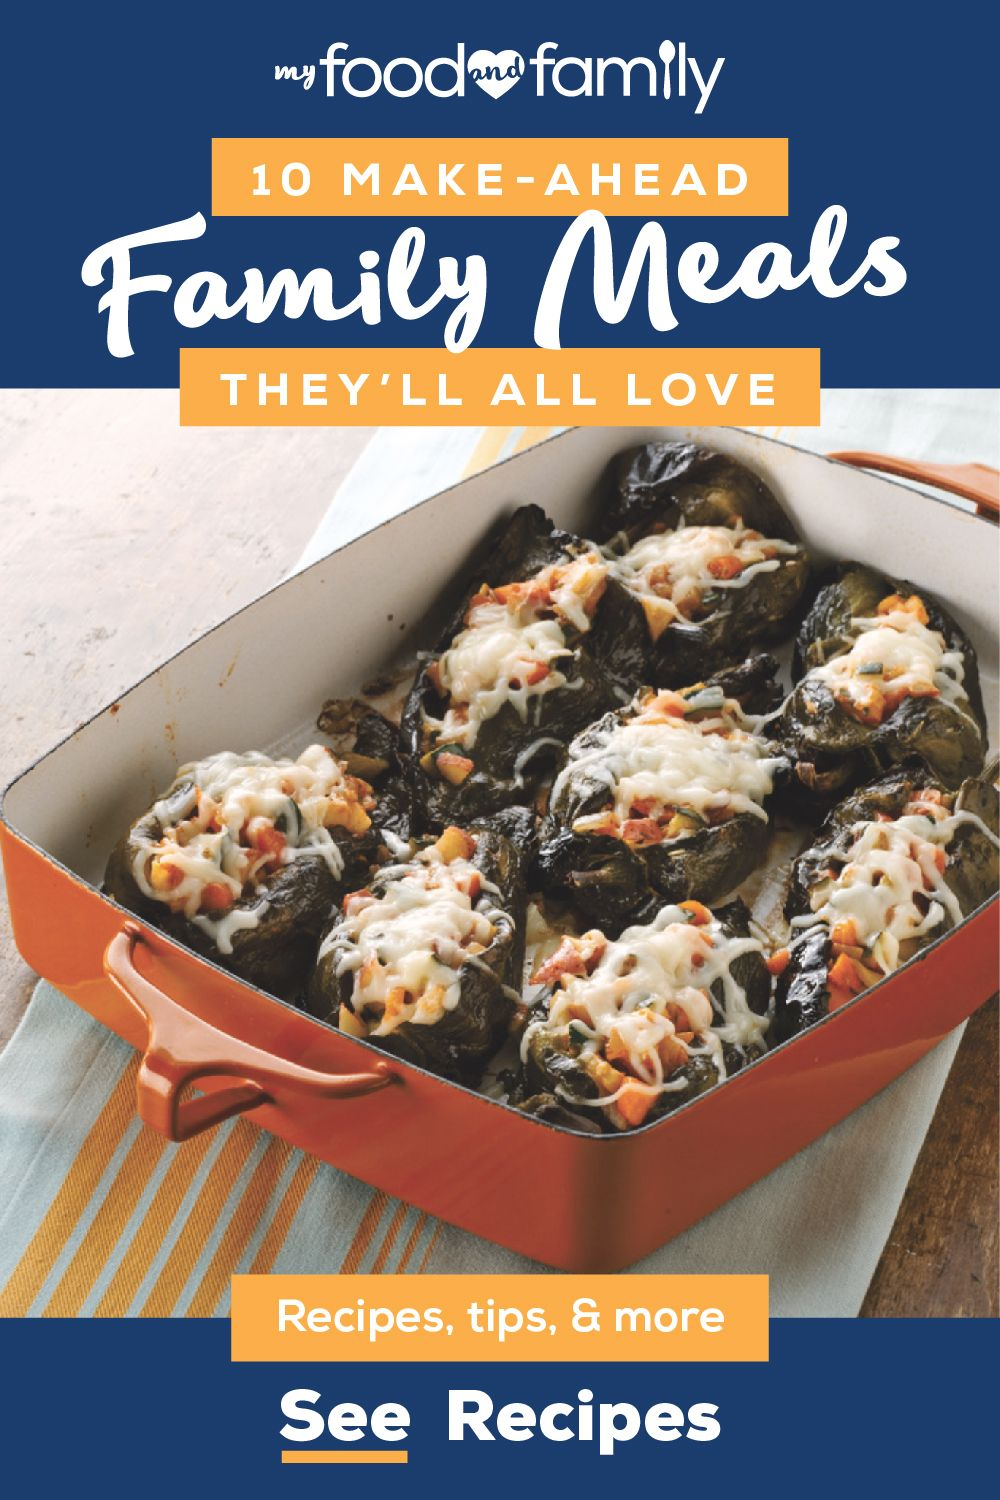 Make-Ahead Family Meals They'll All Love